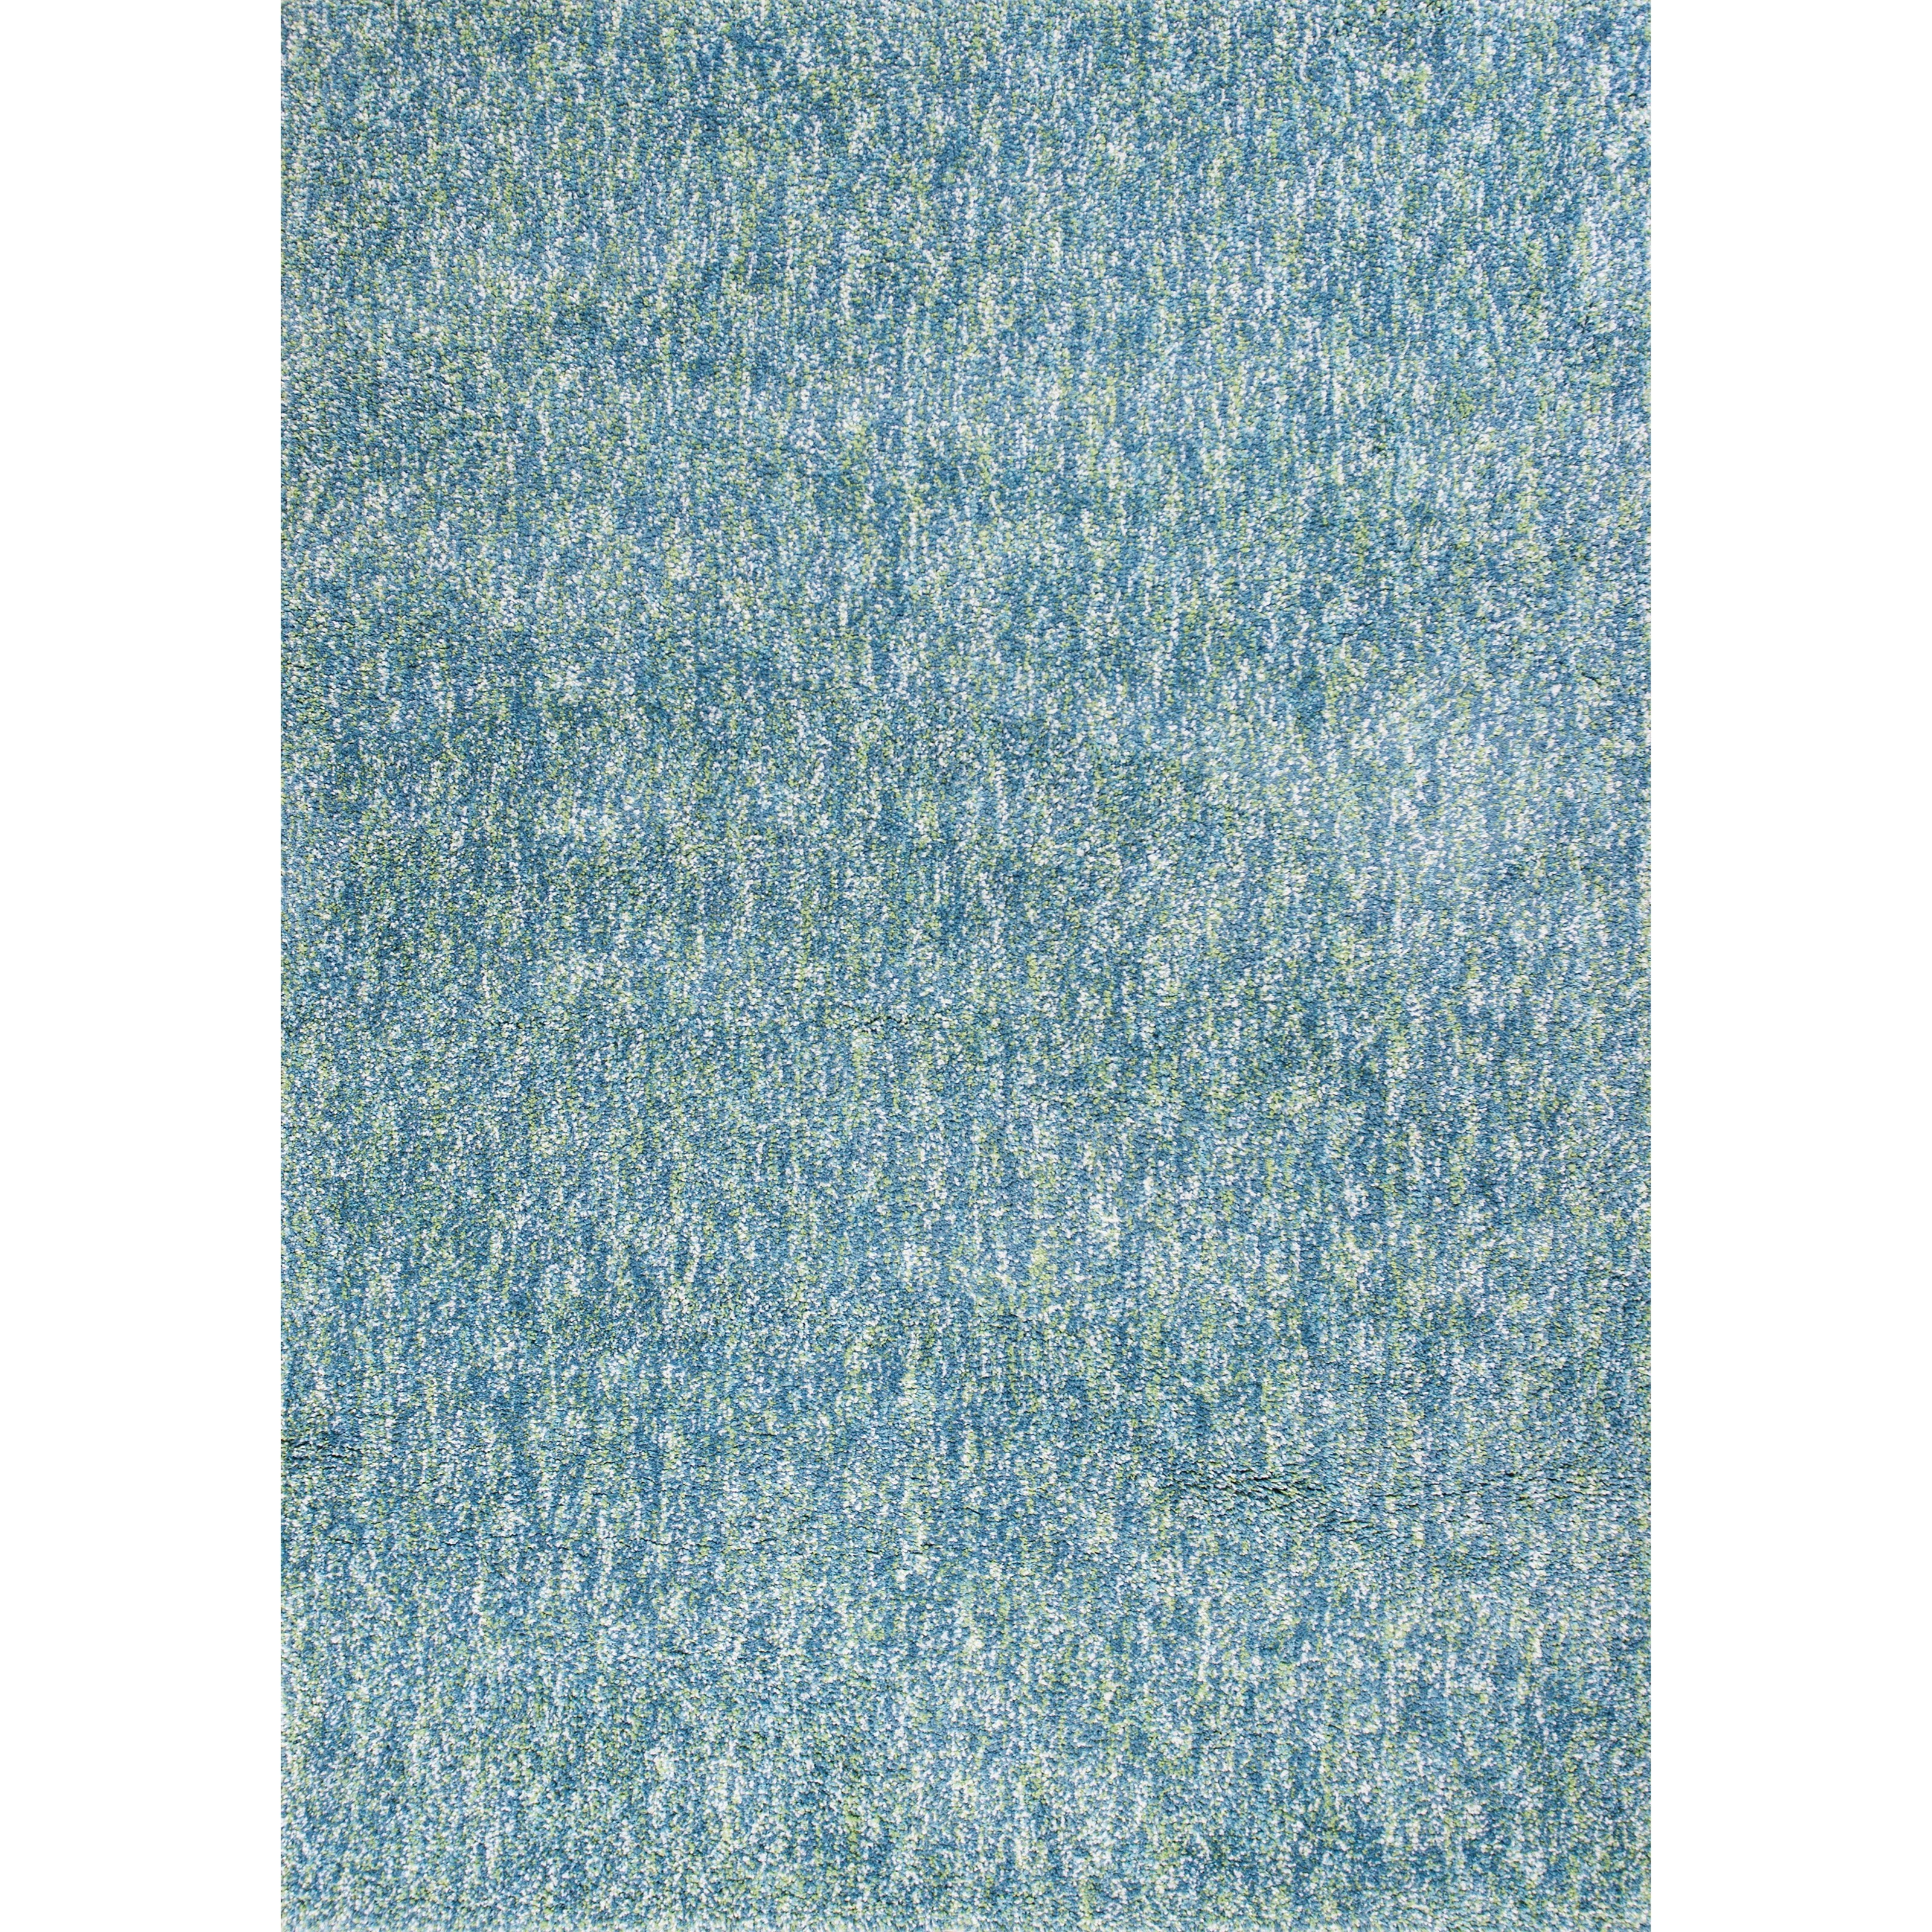 """Bliss 3'9"""" X 2'3"""" Area Rug by Kas at Zak's Home"""